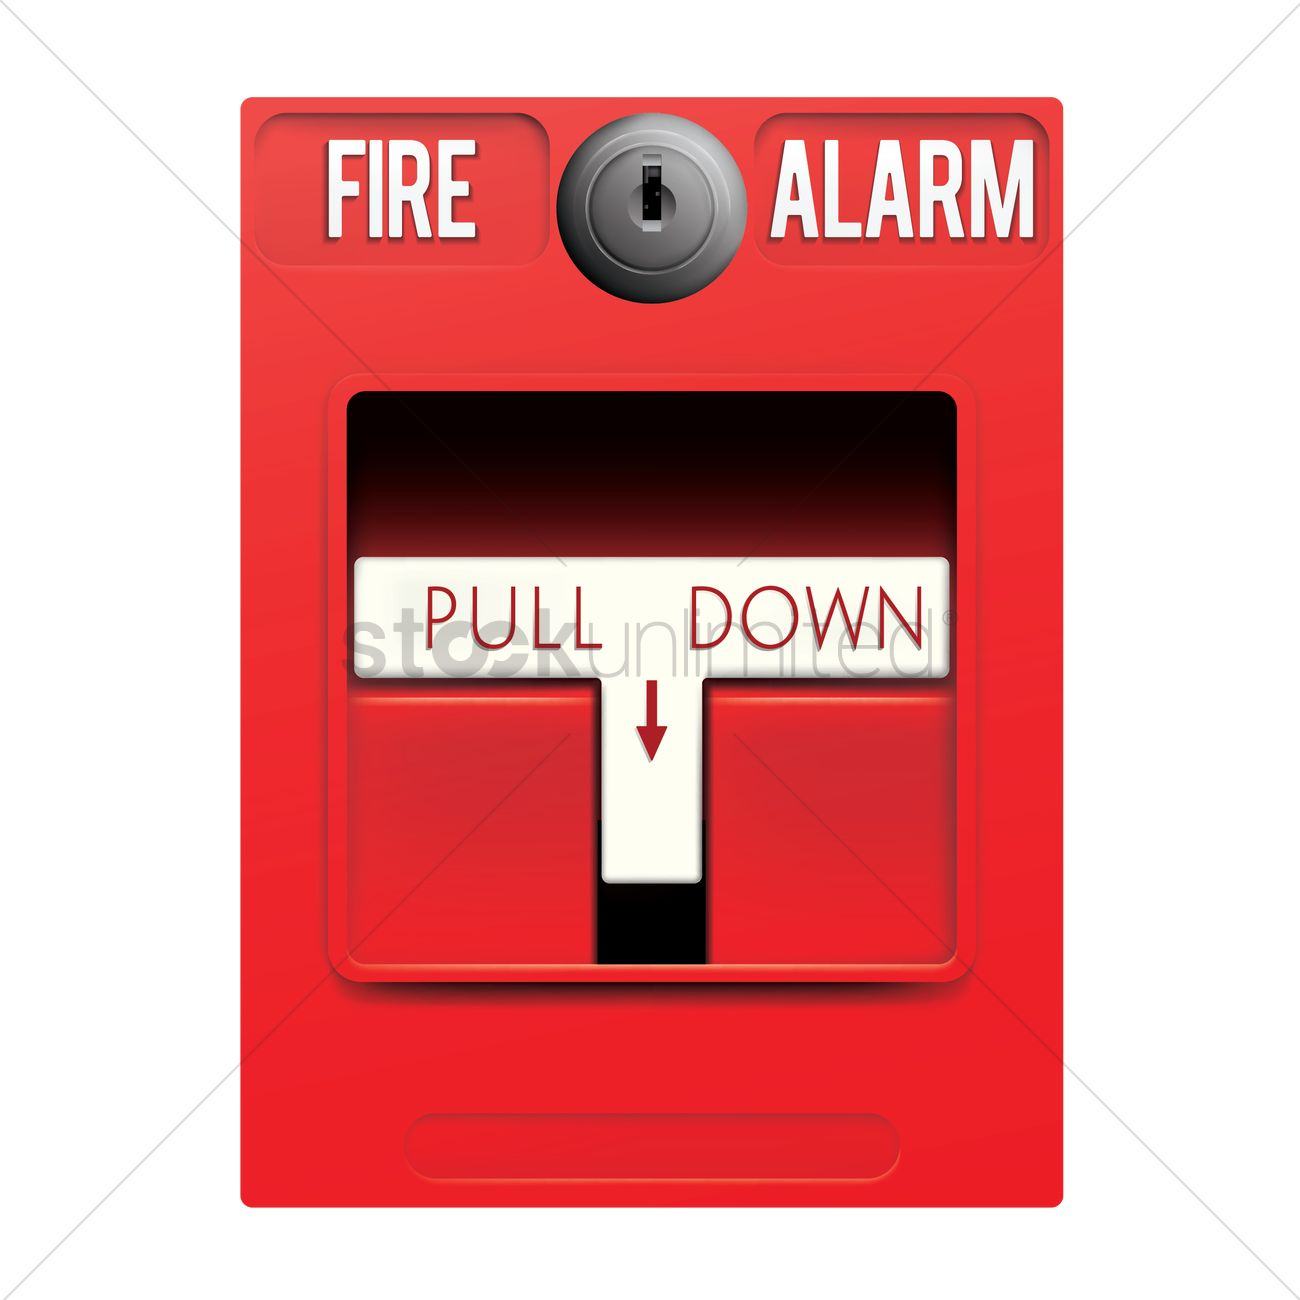 fire alarm vector image 1789076 stockunlimited rh stockunlimited com fire alarm clip art black and white fire alarm clip art free